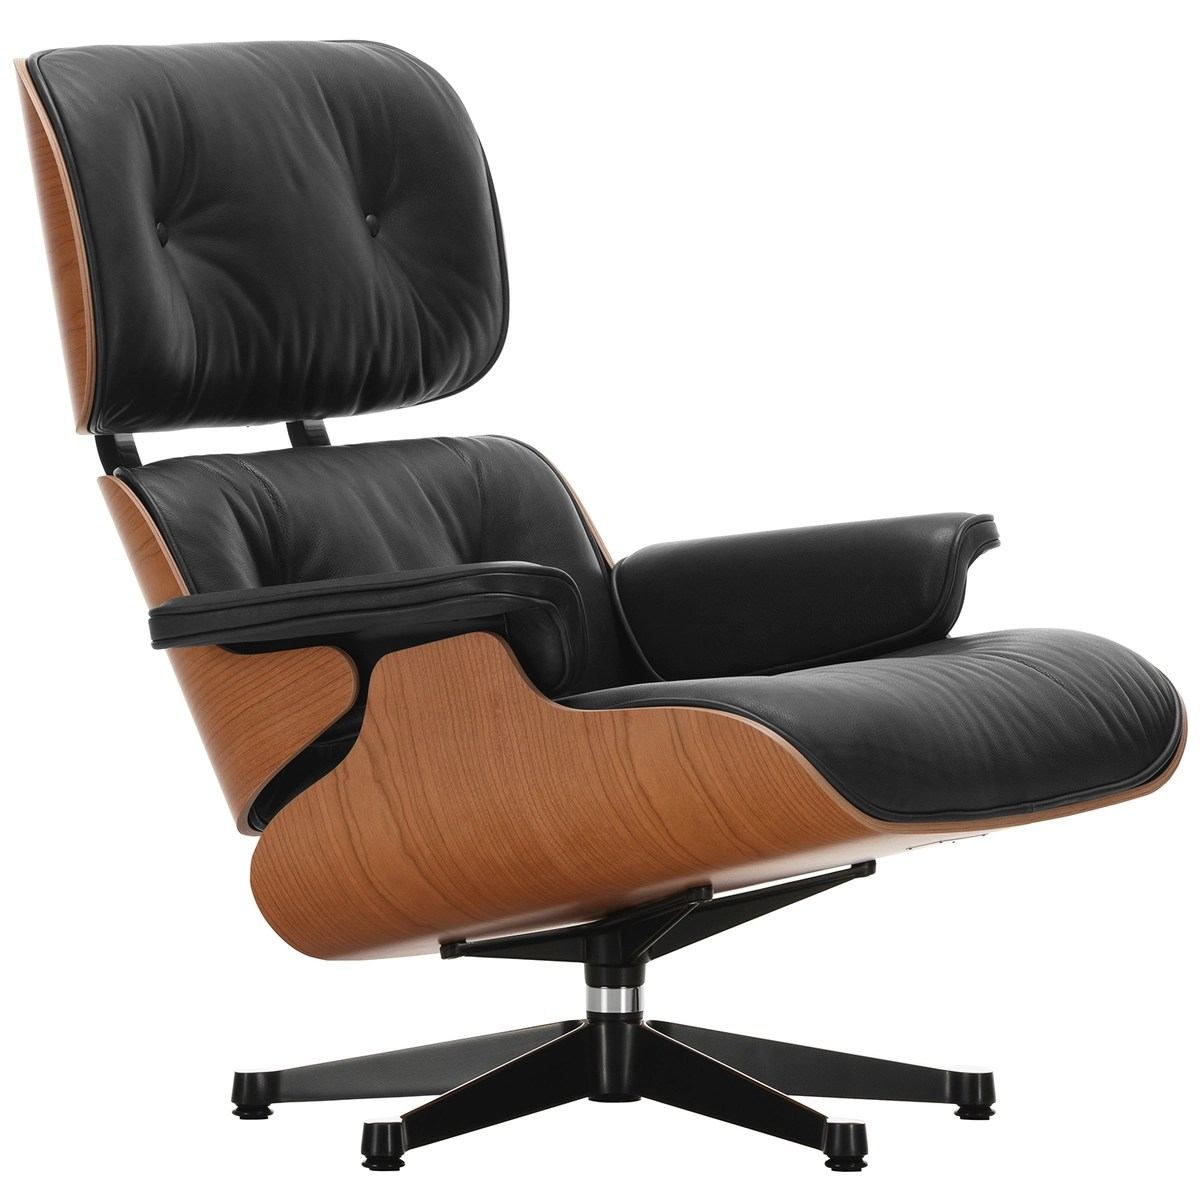 Charles Eames Lounge Chair Vitra Eames Lounge Chair, Classic Size, American Cherry - Black Leathe | Finnish Design Shop